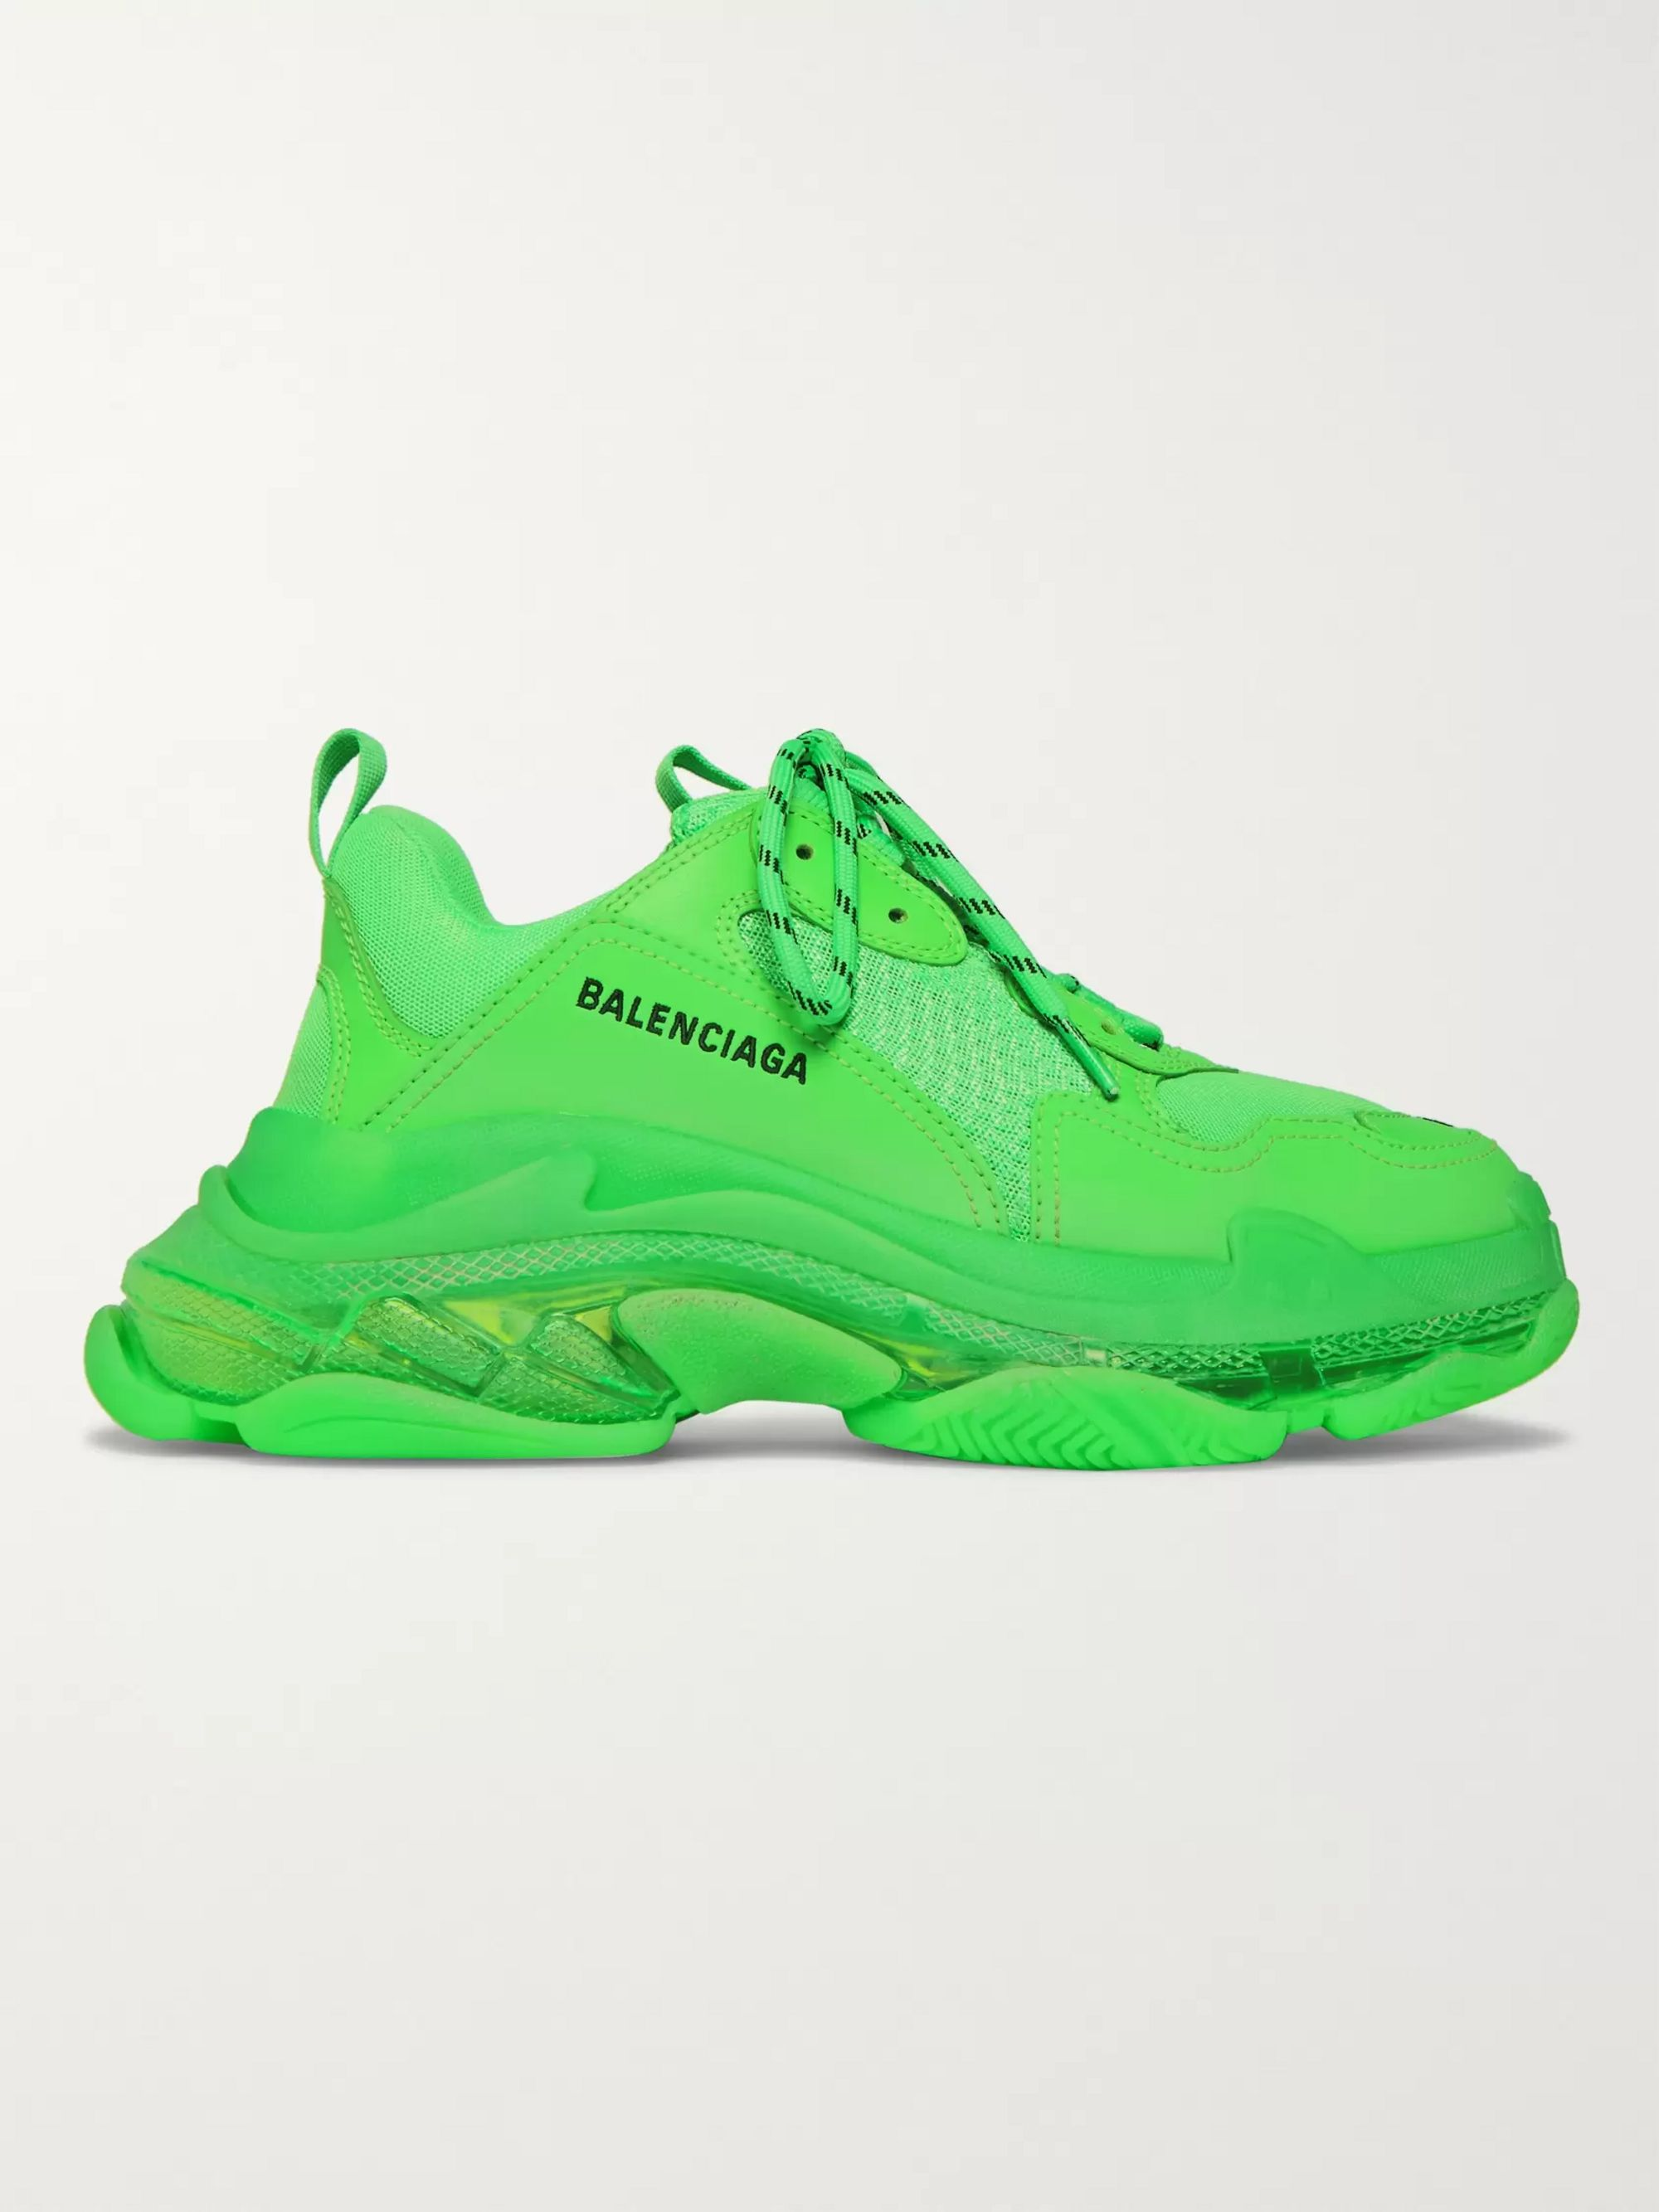 Triple S Clear Sole Mesh, Nubuck and Leather Sneakers